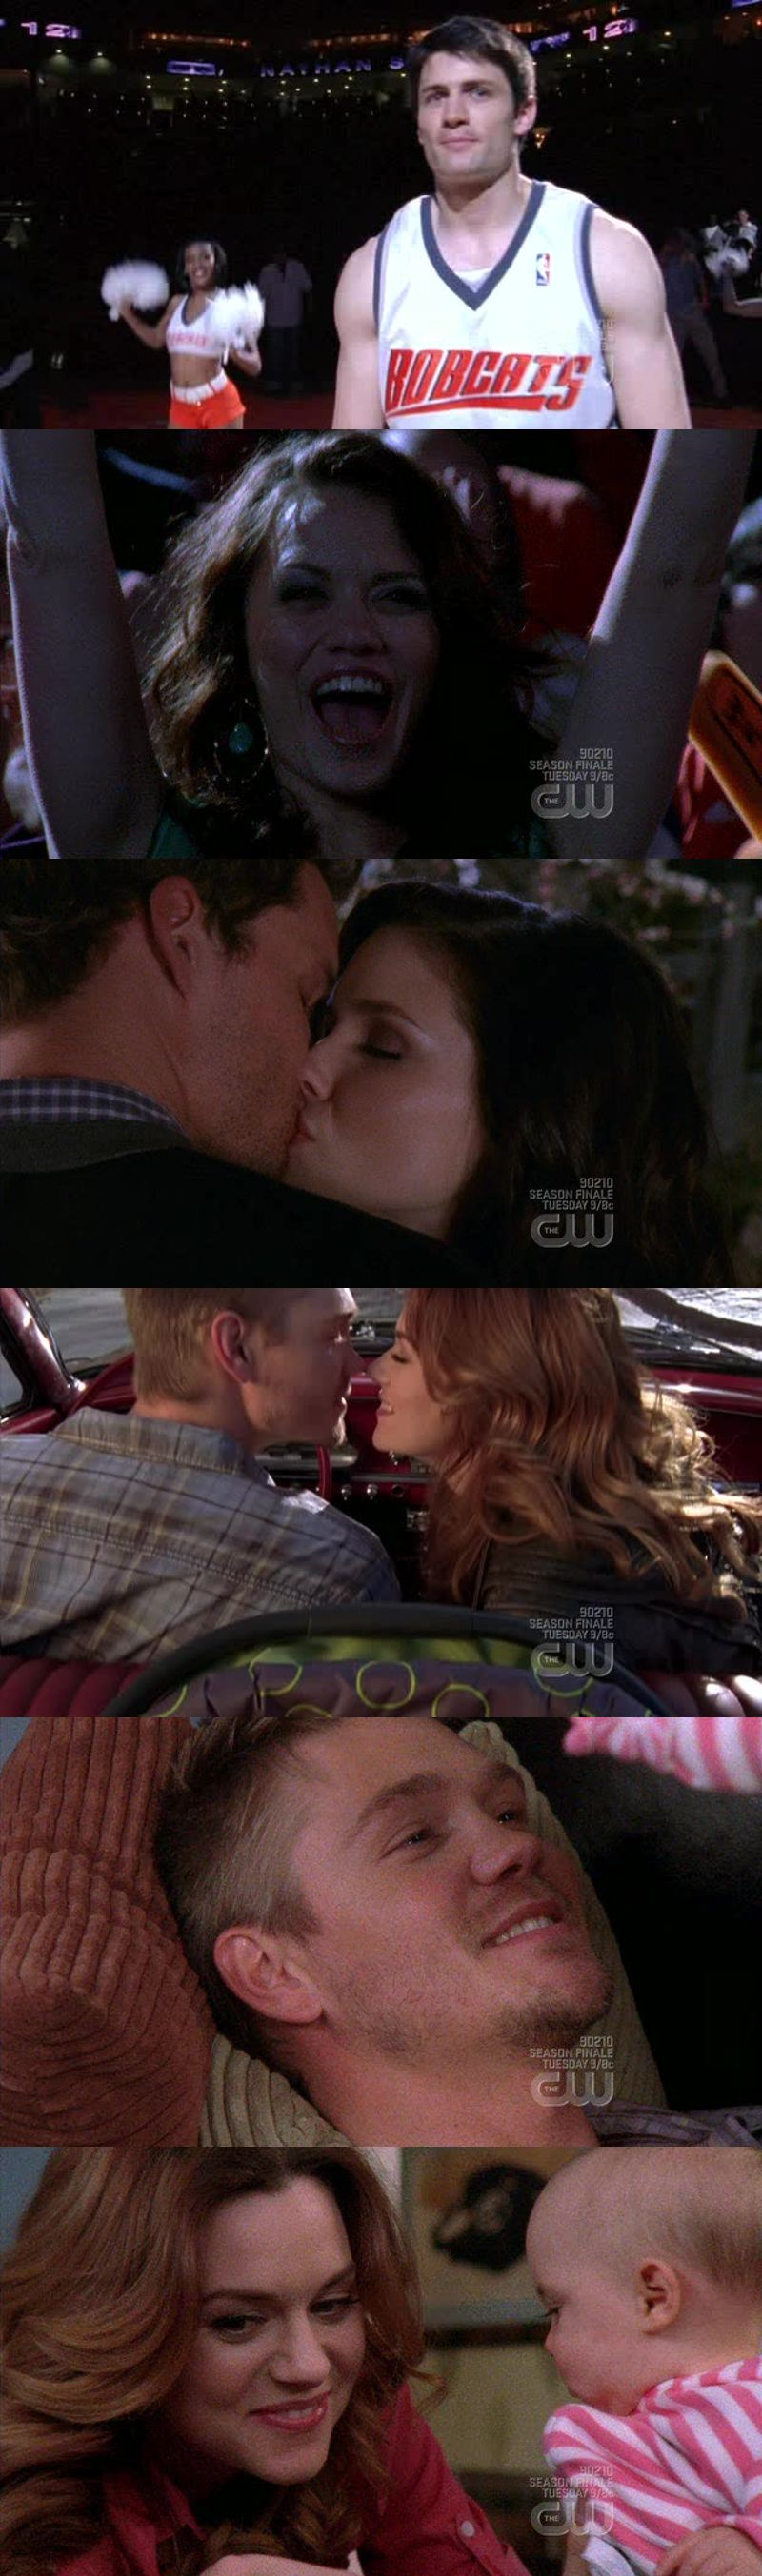 That would have made a great serie finale... But I get the feeling That season 7, 8 & 9 will be too much and boring.  Without Lucas & Peyton I don't know il i'll still Luke the show.